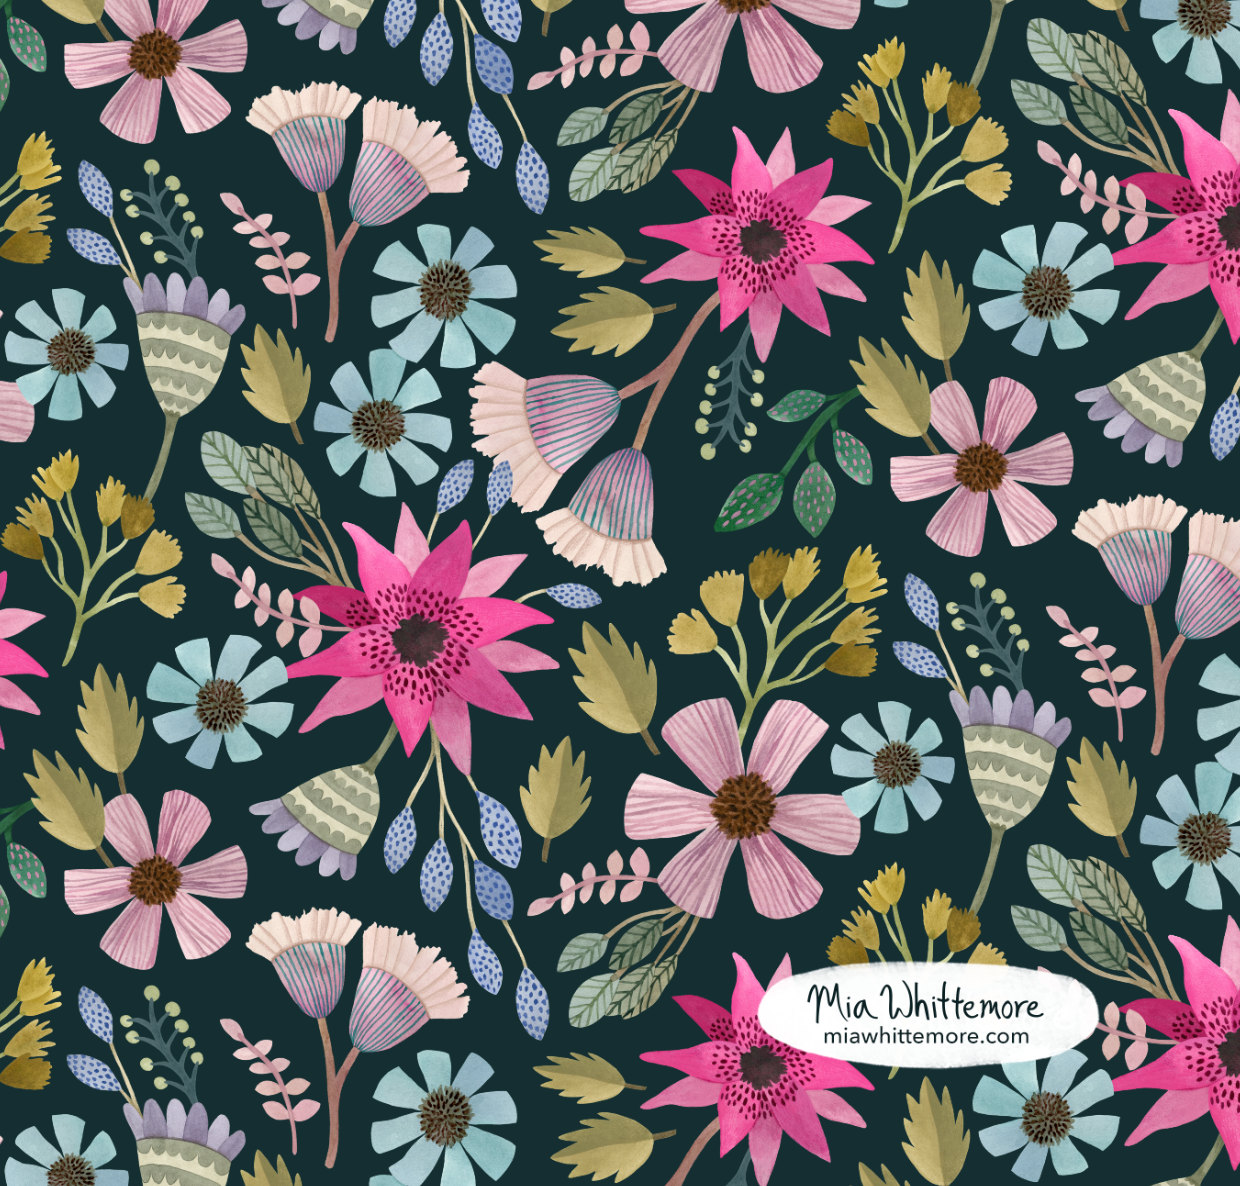 Mia Whittemore Hot Pink Floral.png